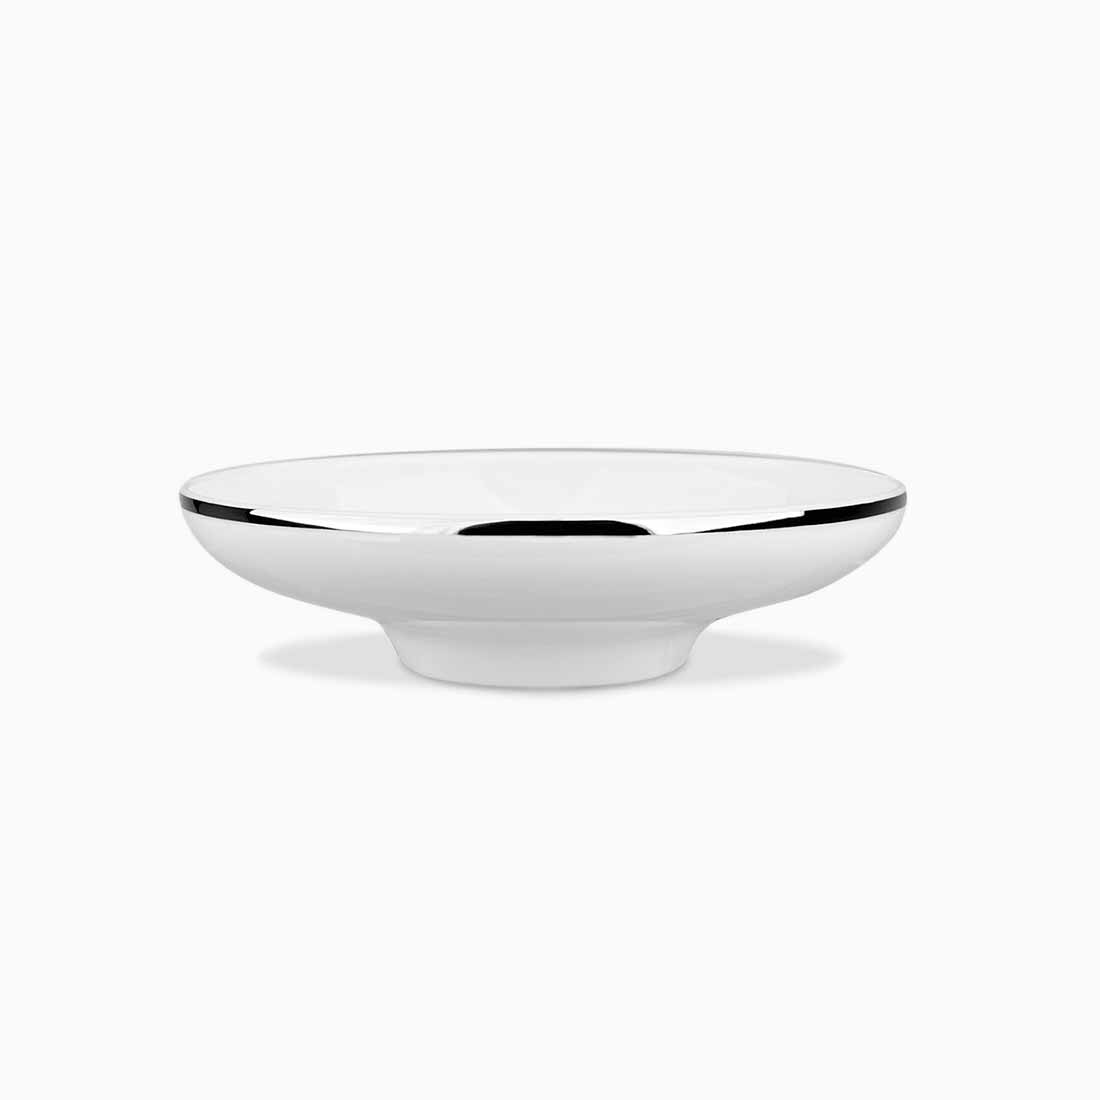 Pomona Bowl White with platinum line 18 cm by Bodo Sperlein